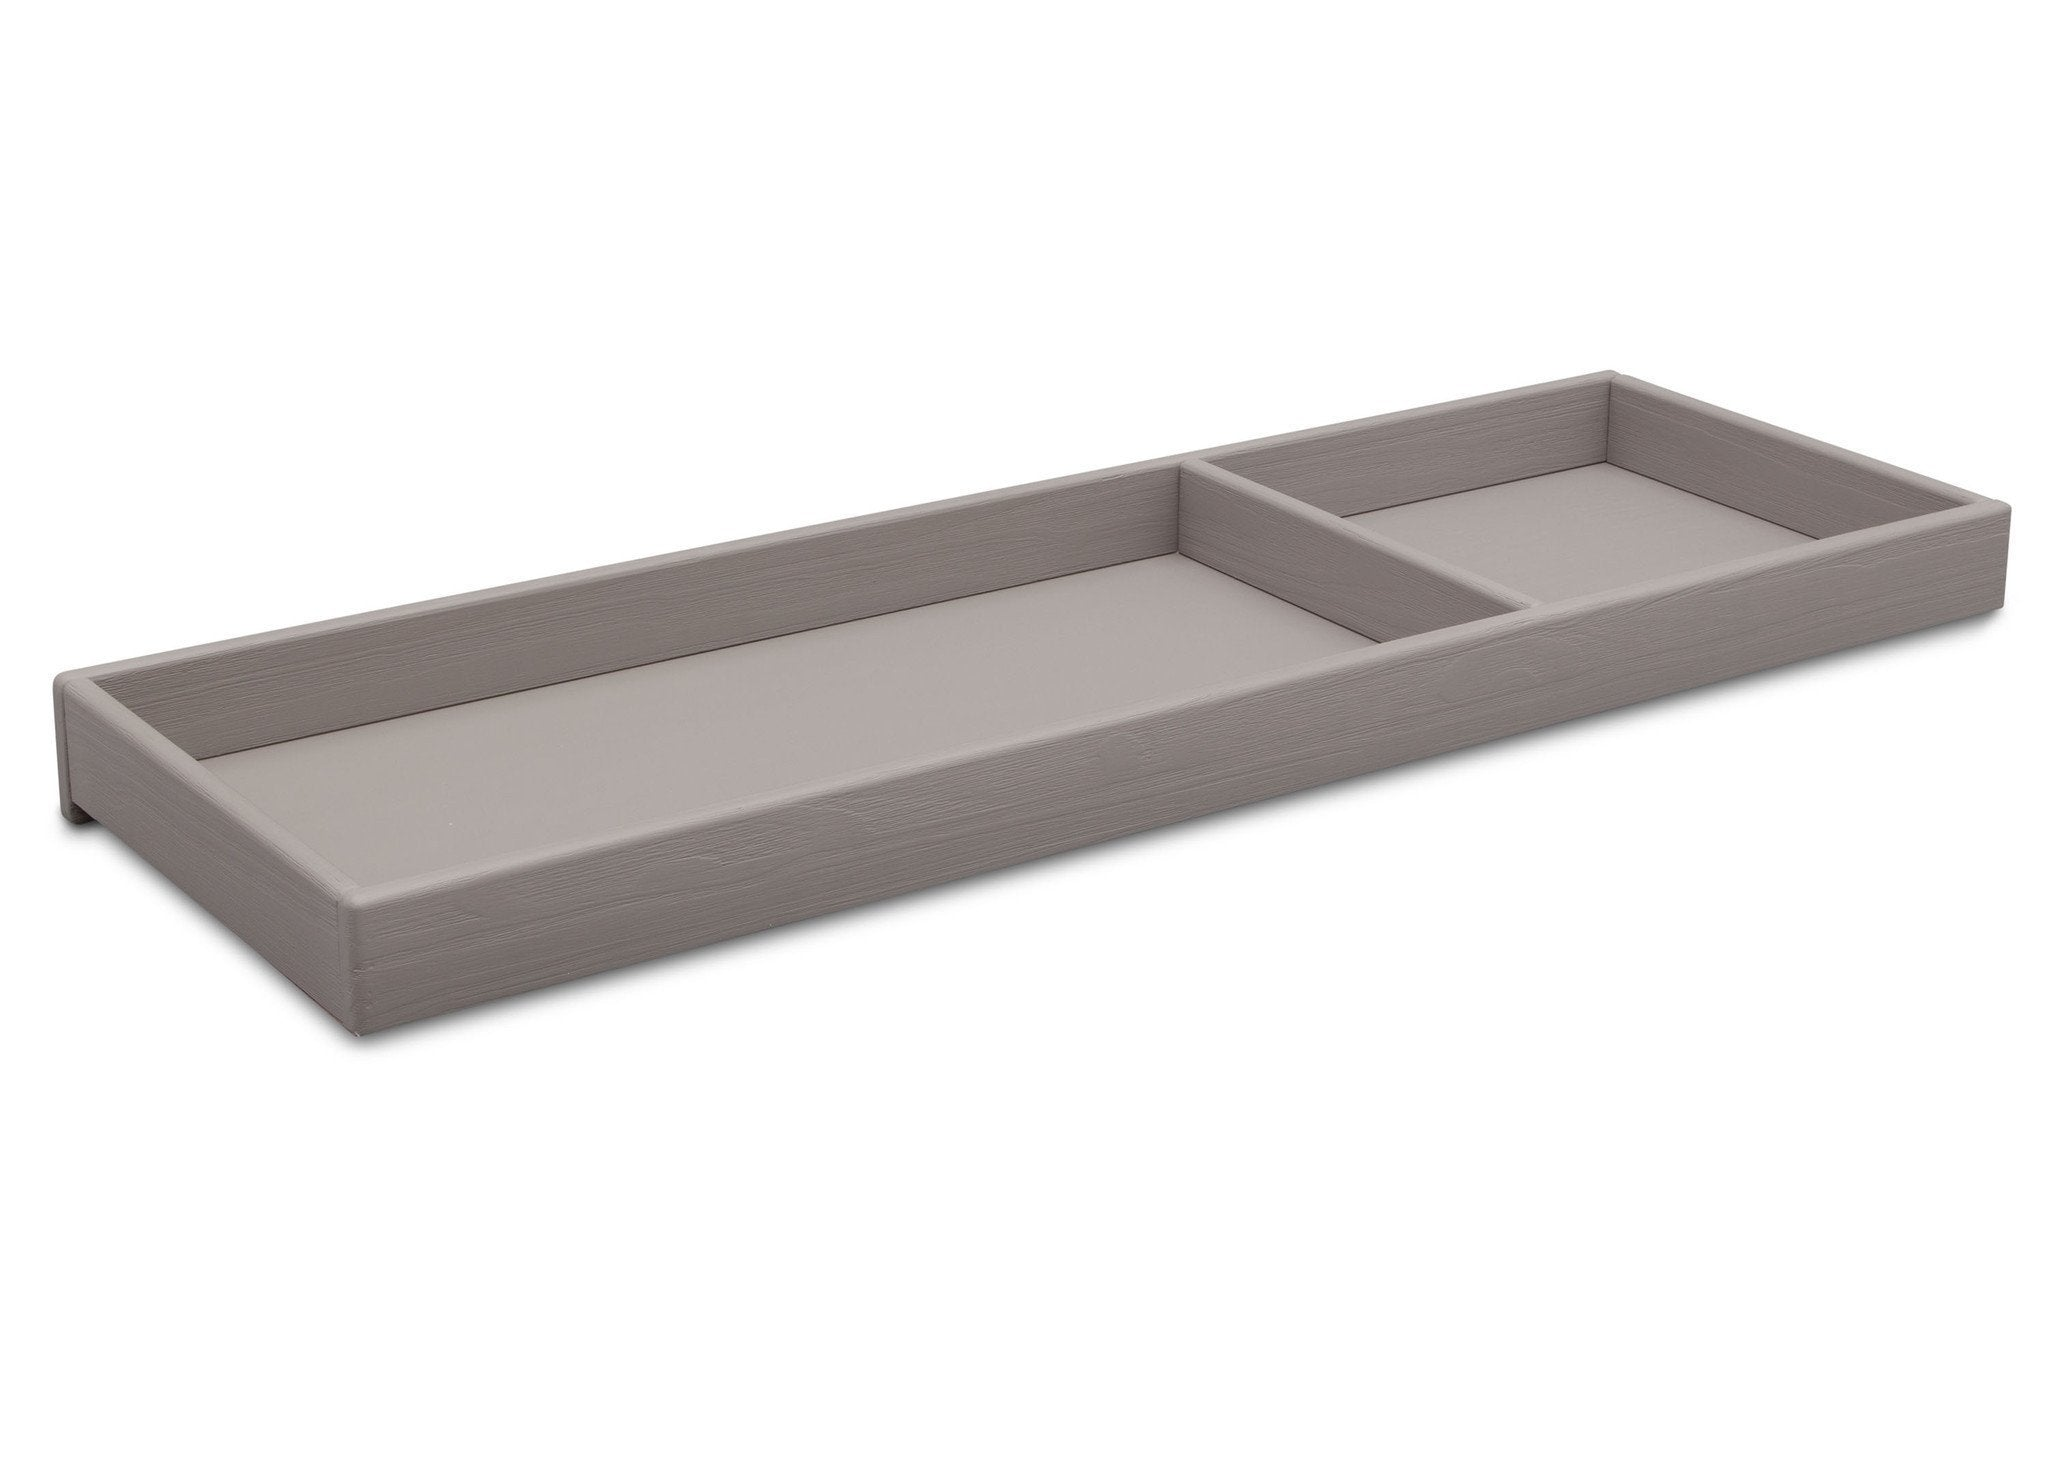 Simmons Kids Rustic Haze (940) Changing Tray side view b2b